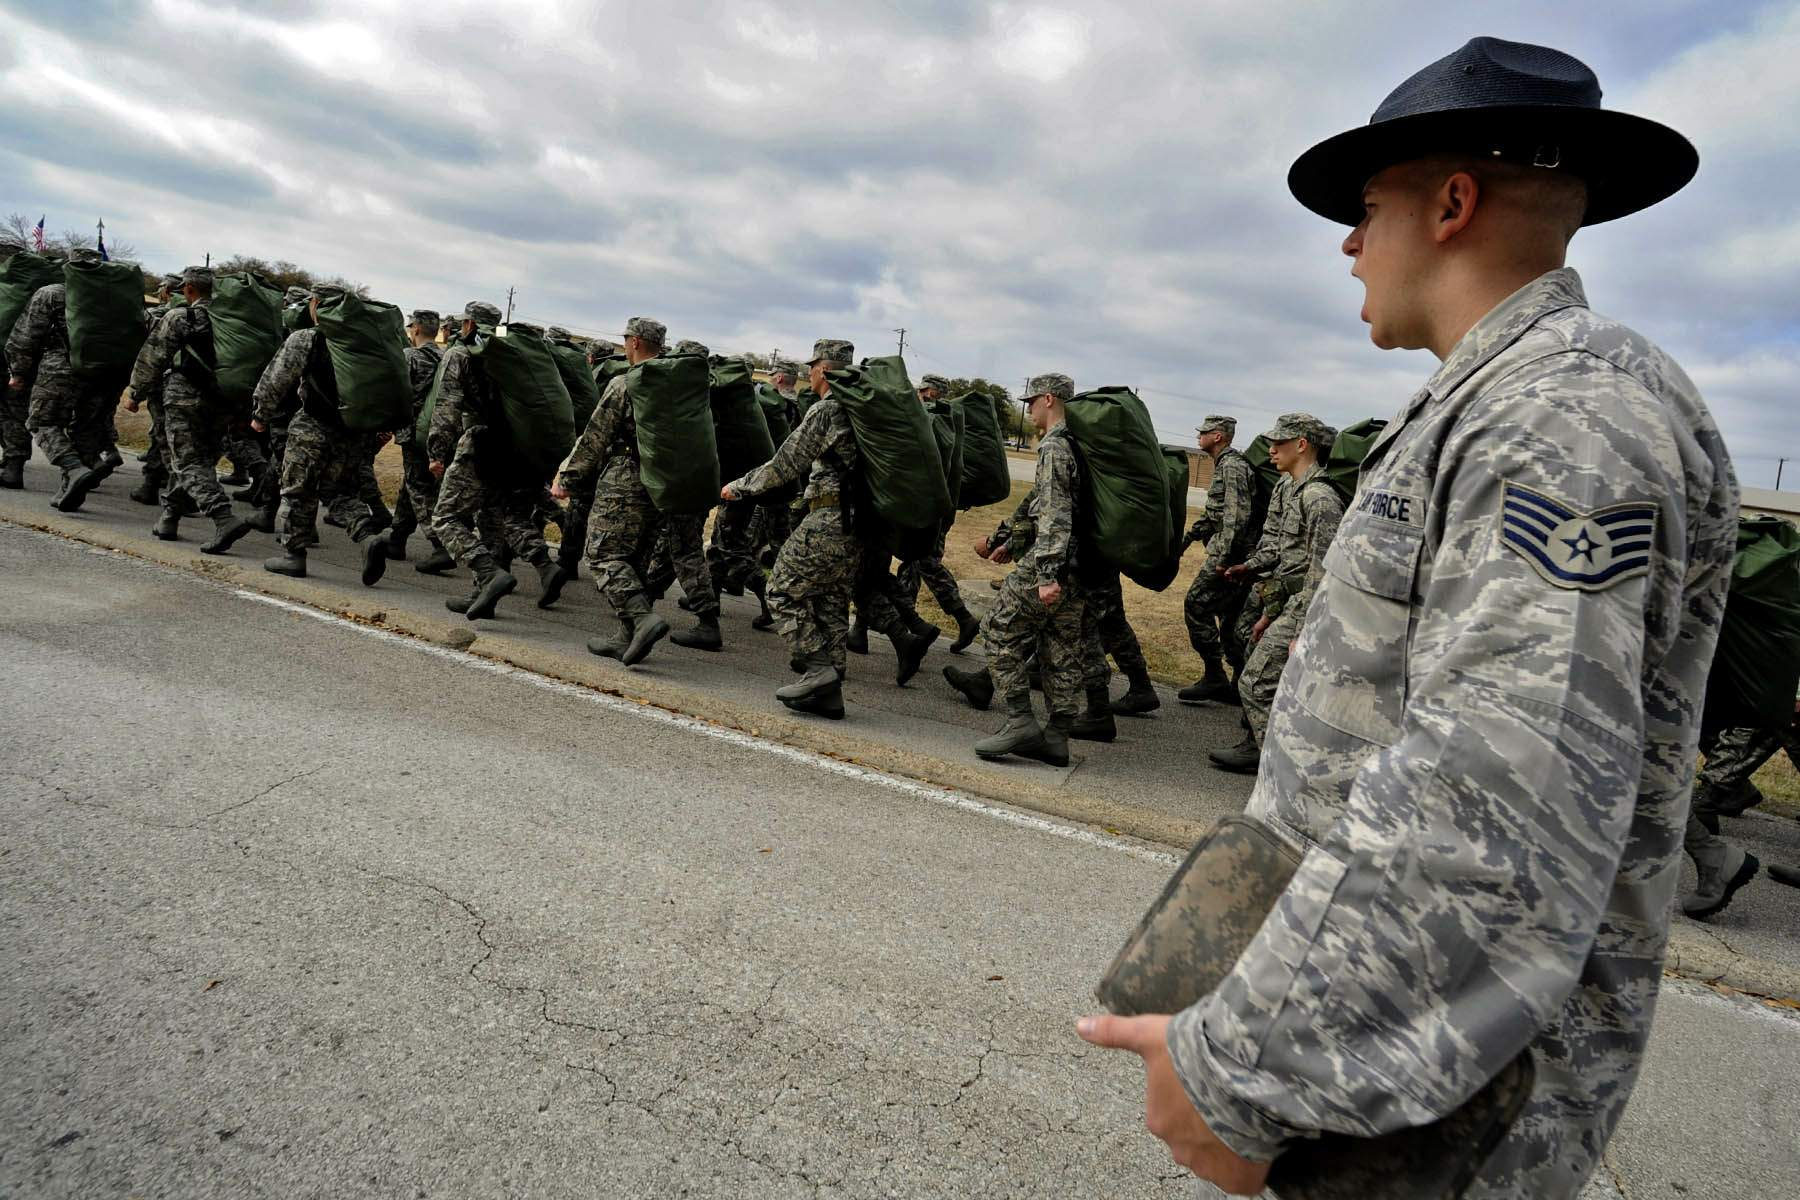 Army mulls tougher basic training for outofshape undisciplined recruits